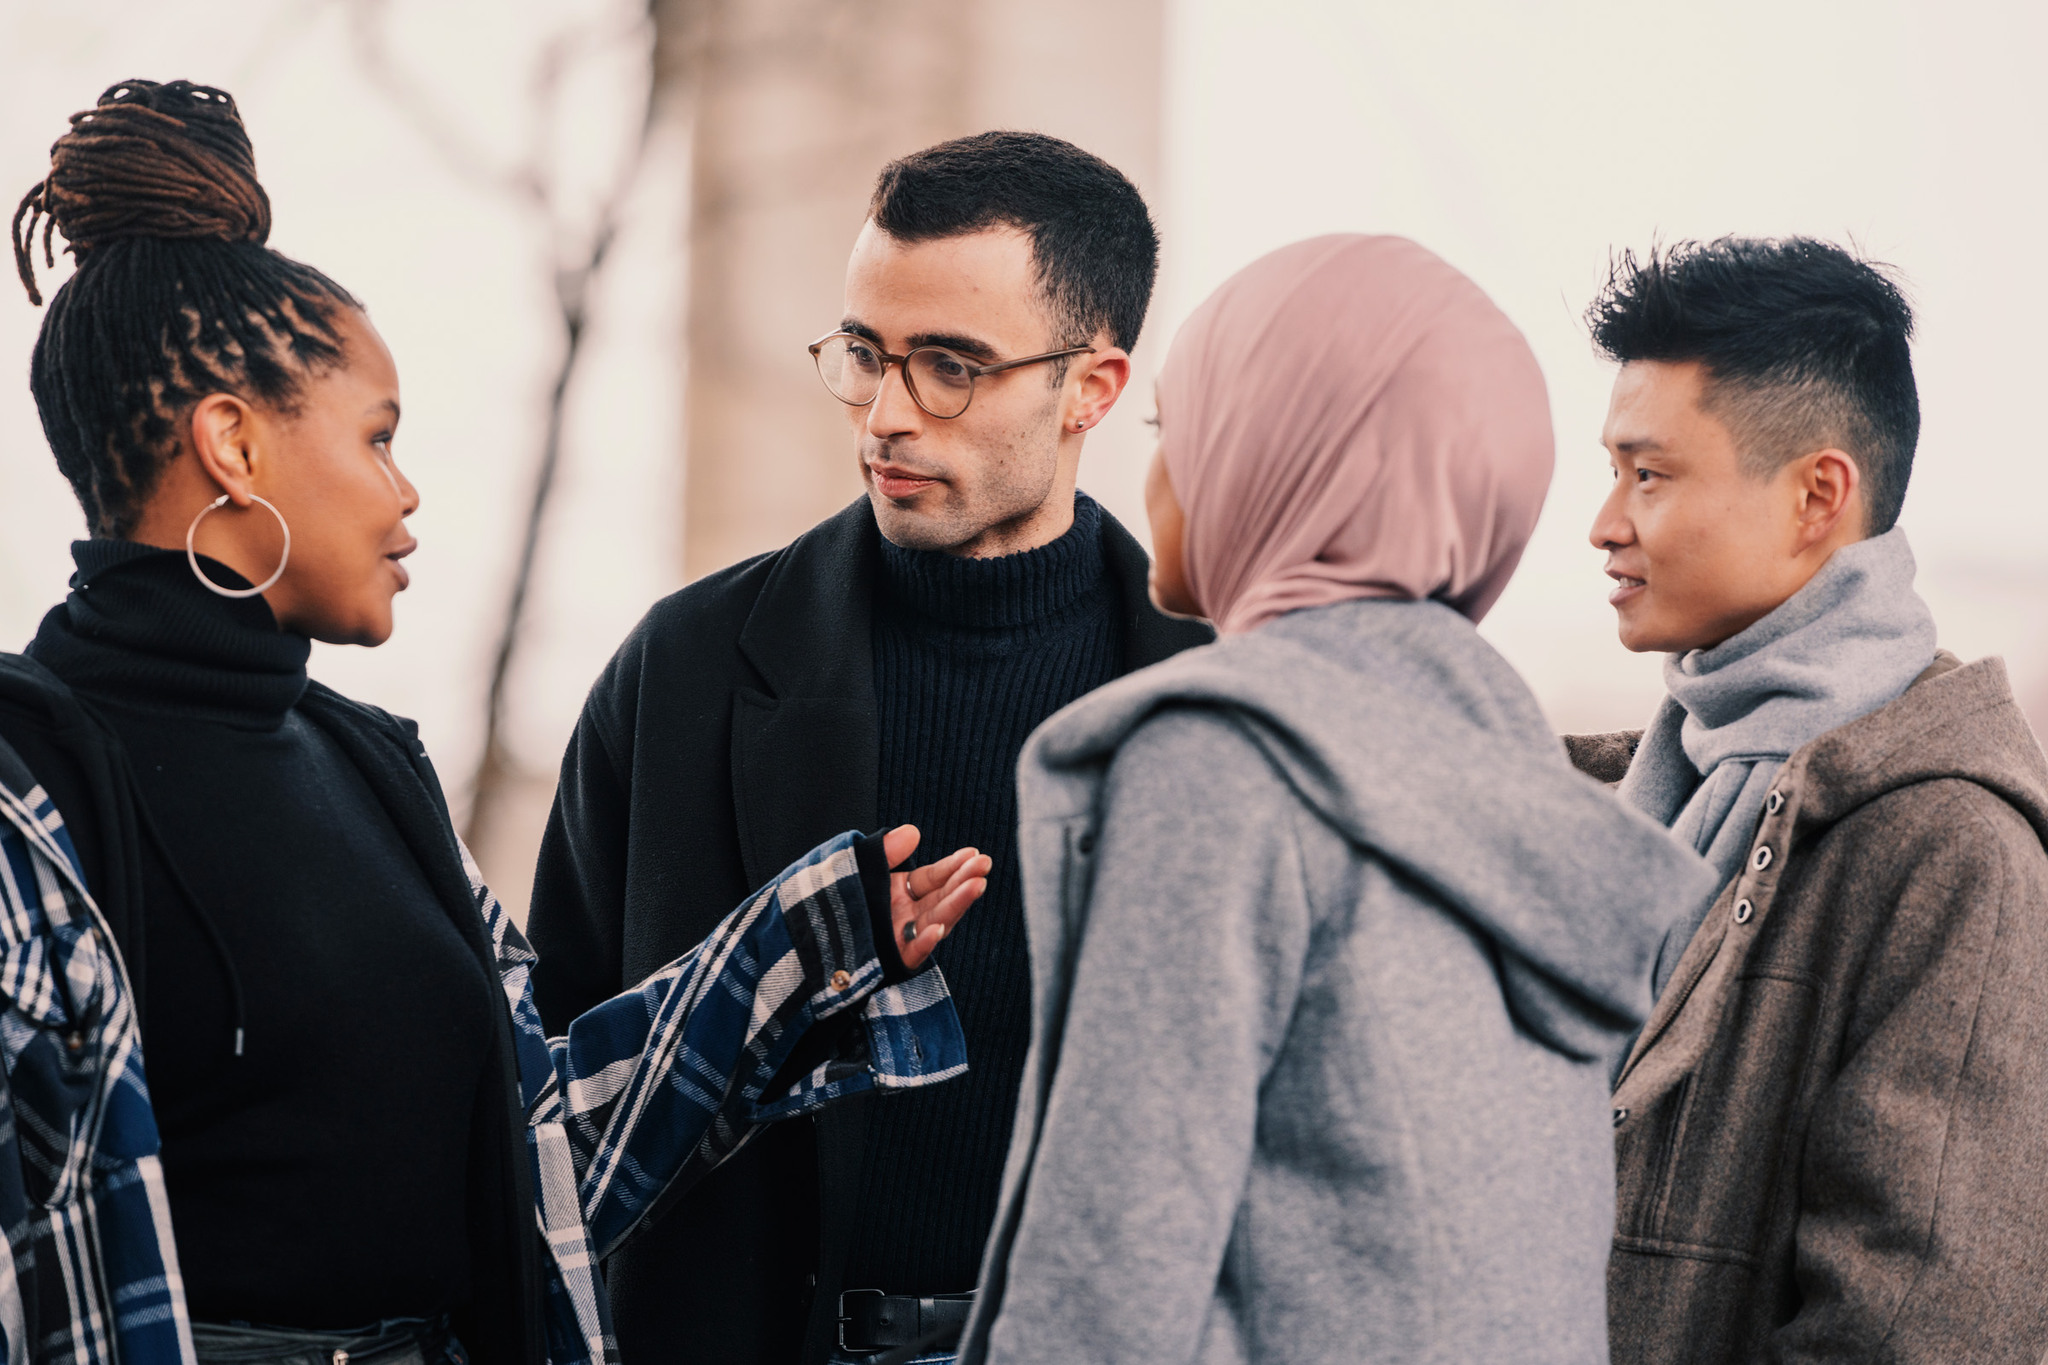 4 international students talking to each other in Sweden